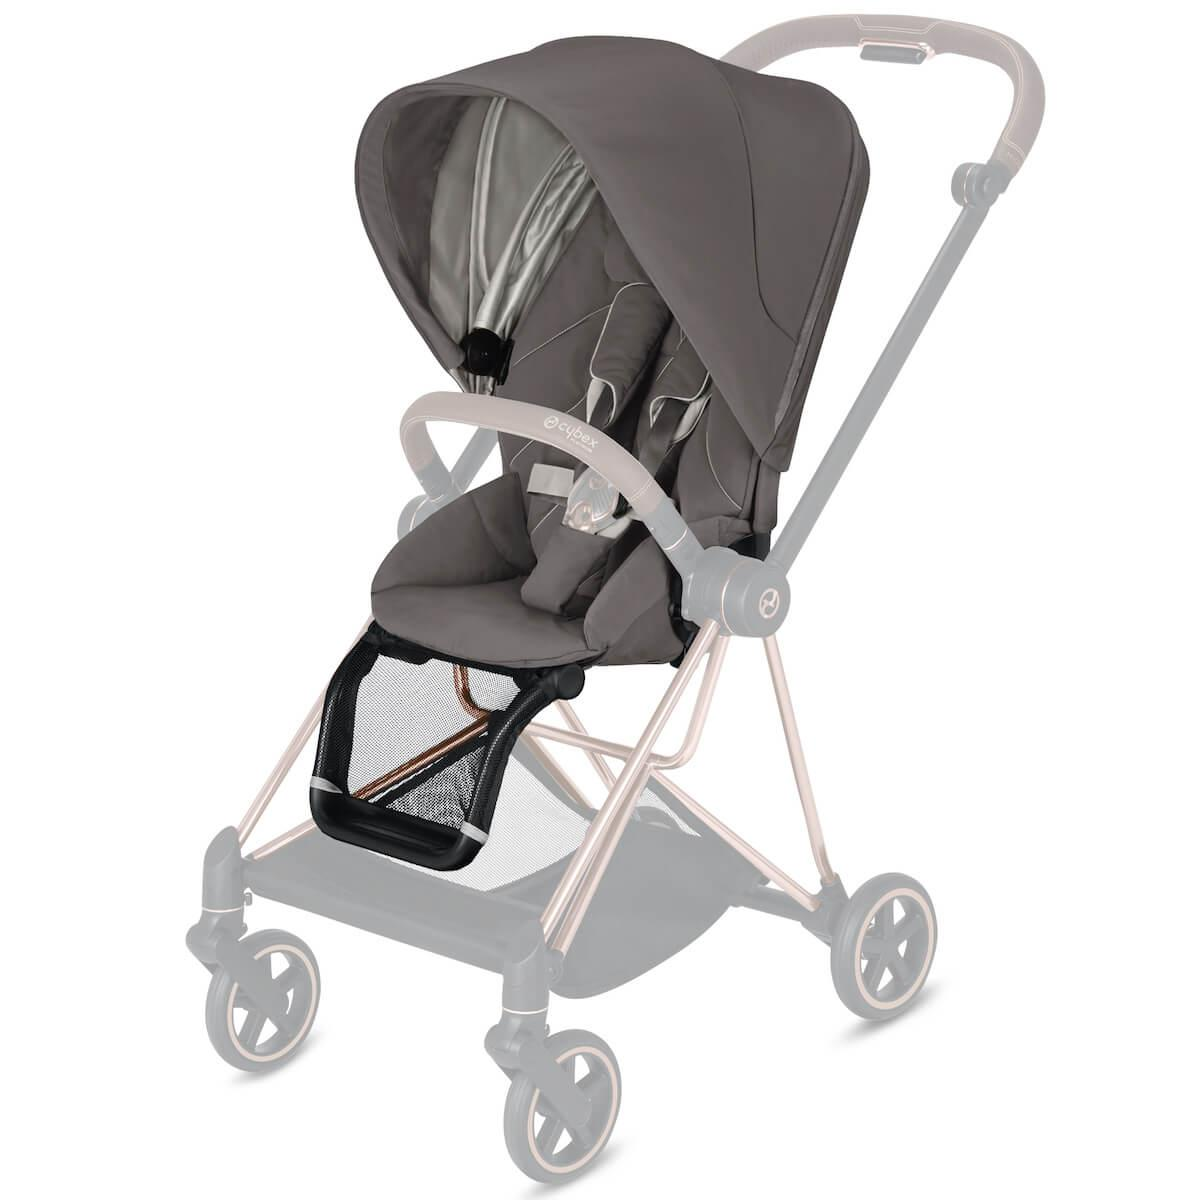 Assise-habillage poussette MIOS Cybex Soho grey-mid grey